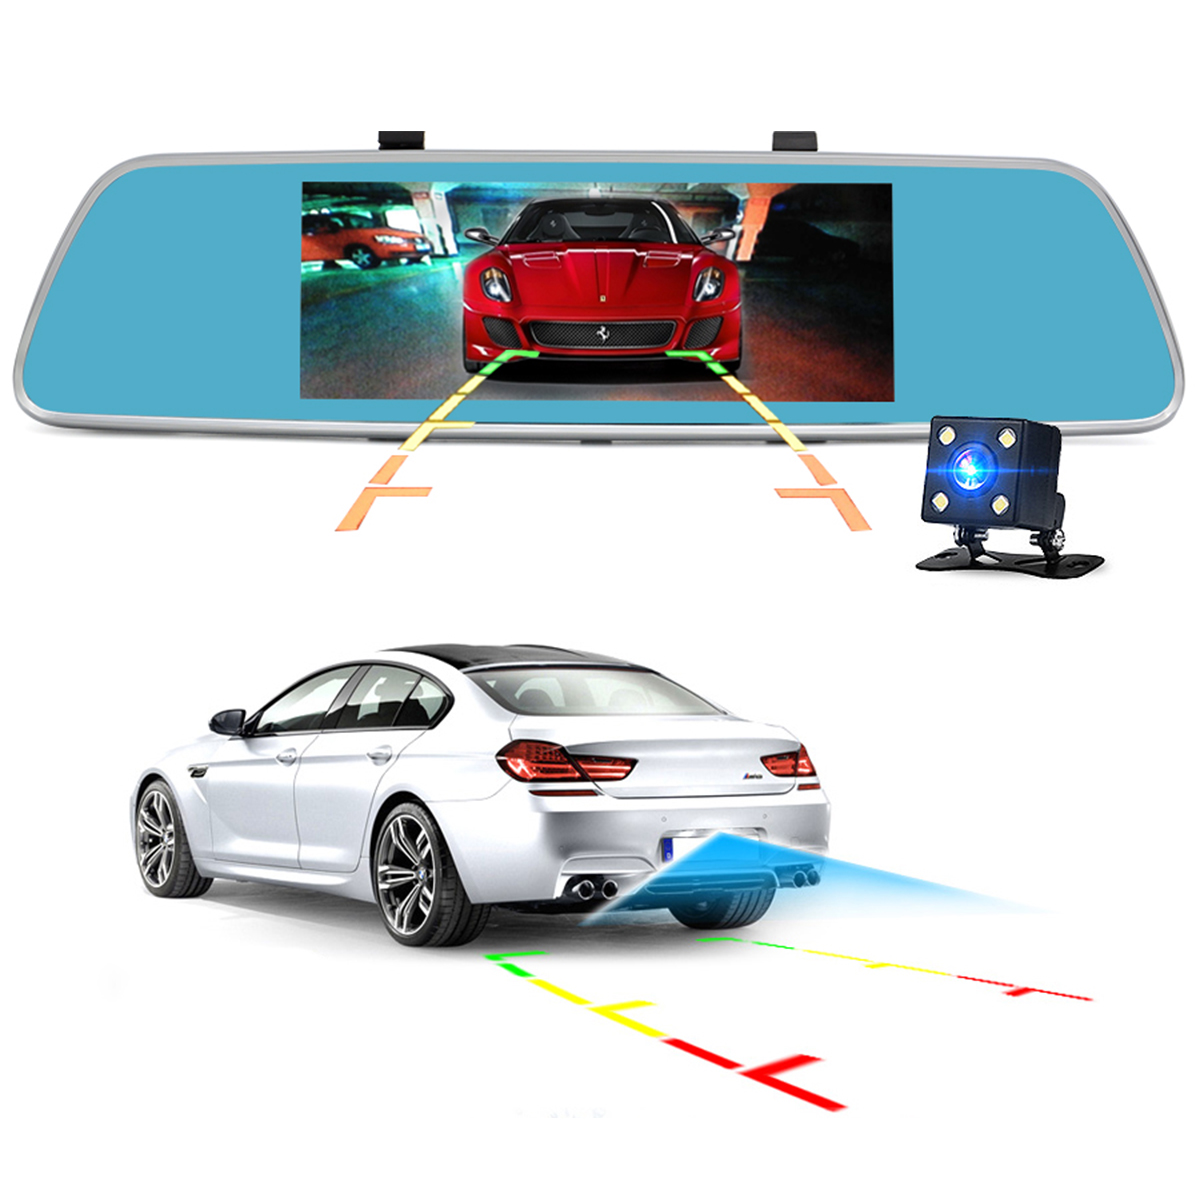 Junsun A760 3G 7 Inch Car DVR Mirror Video Camera Full HD 1080P Android 5.0 Dash cam 16GB Dual Lens